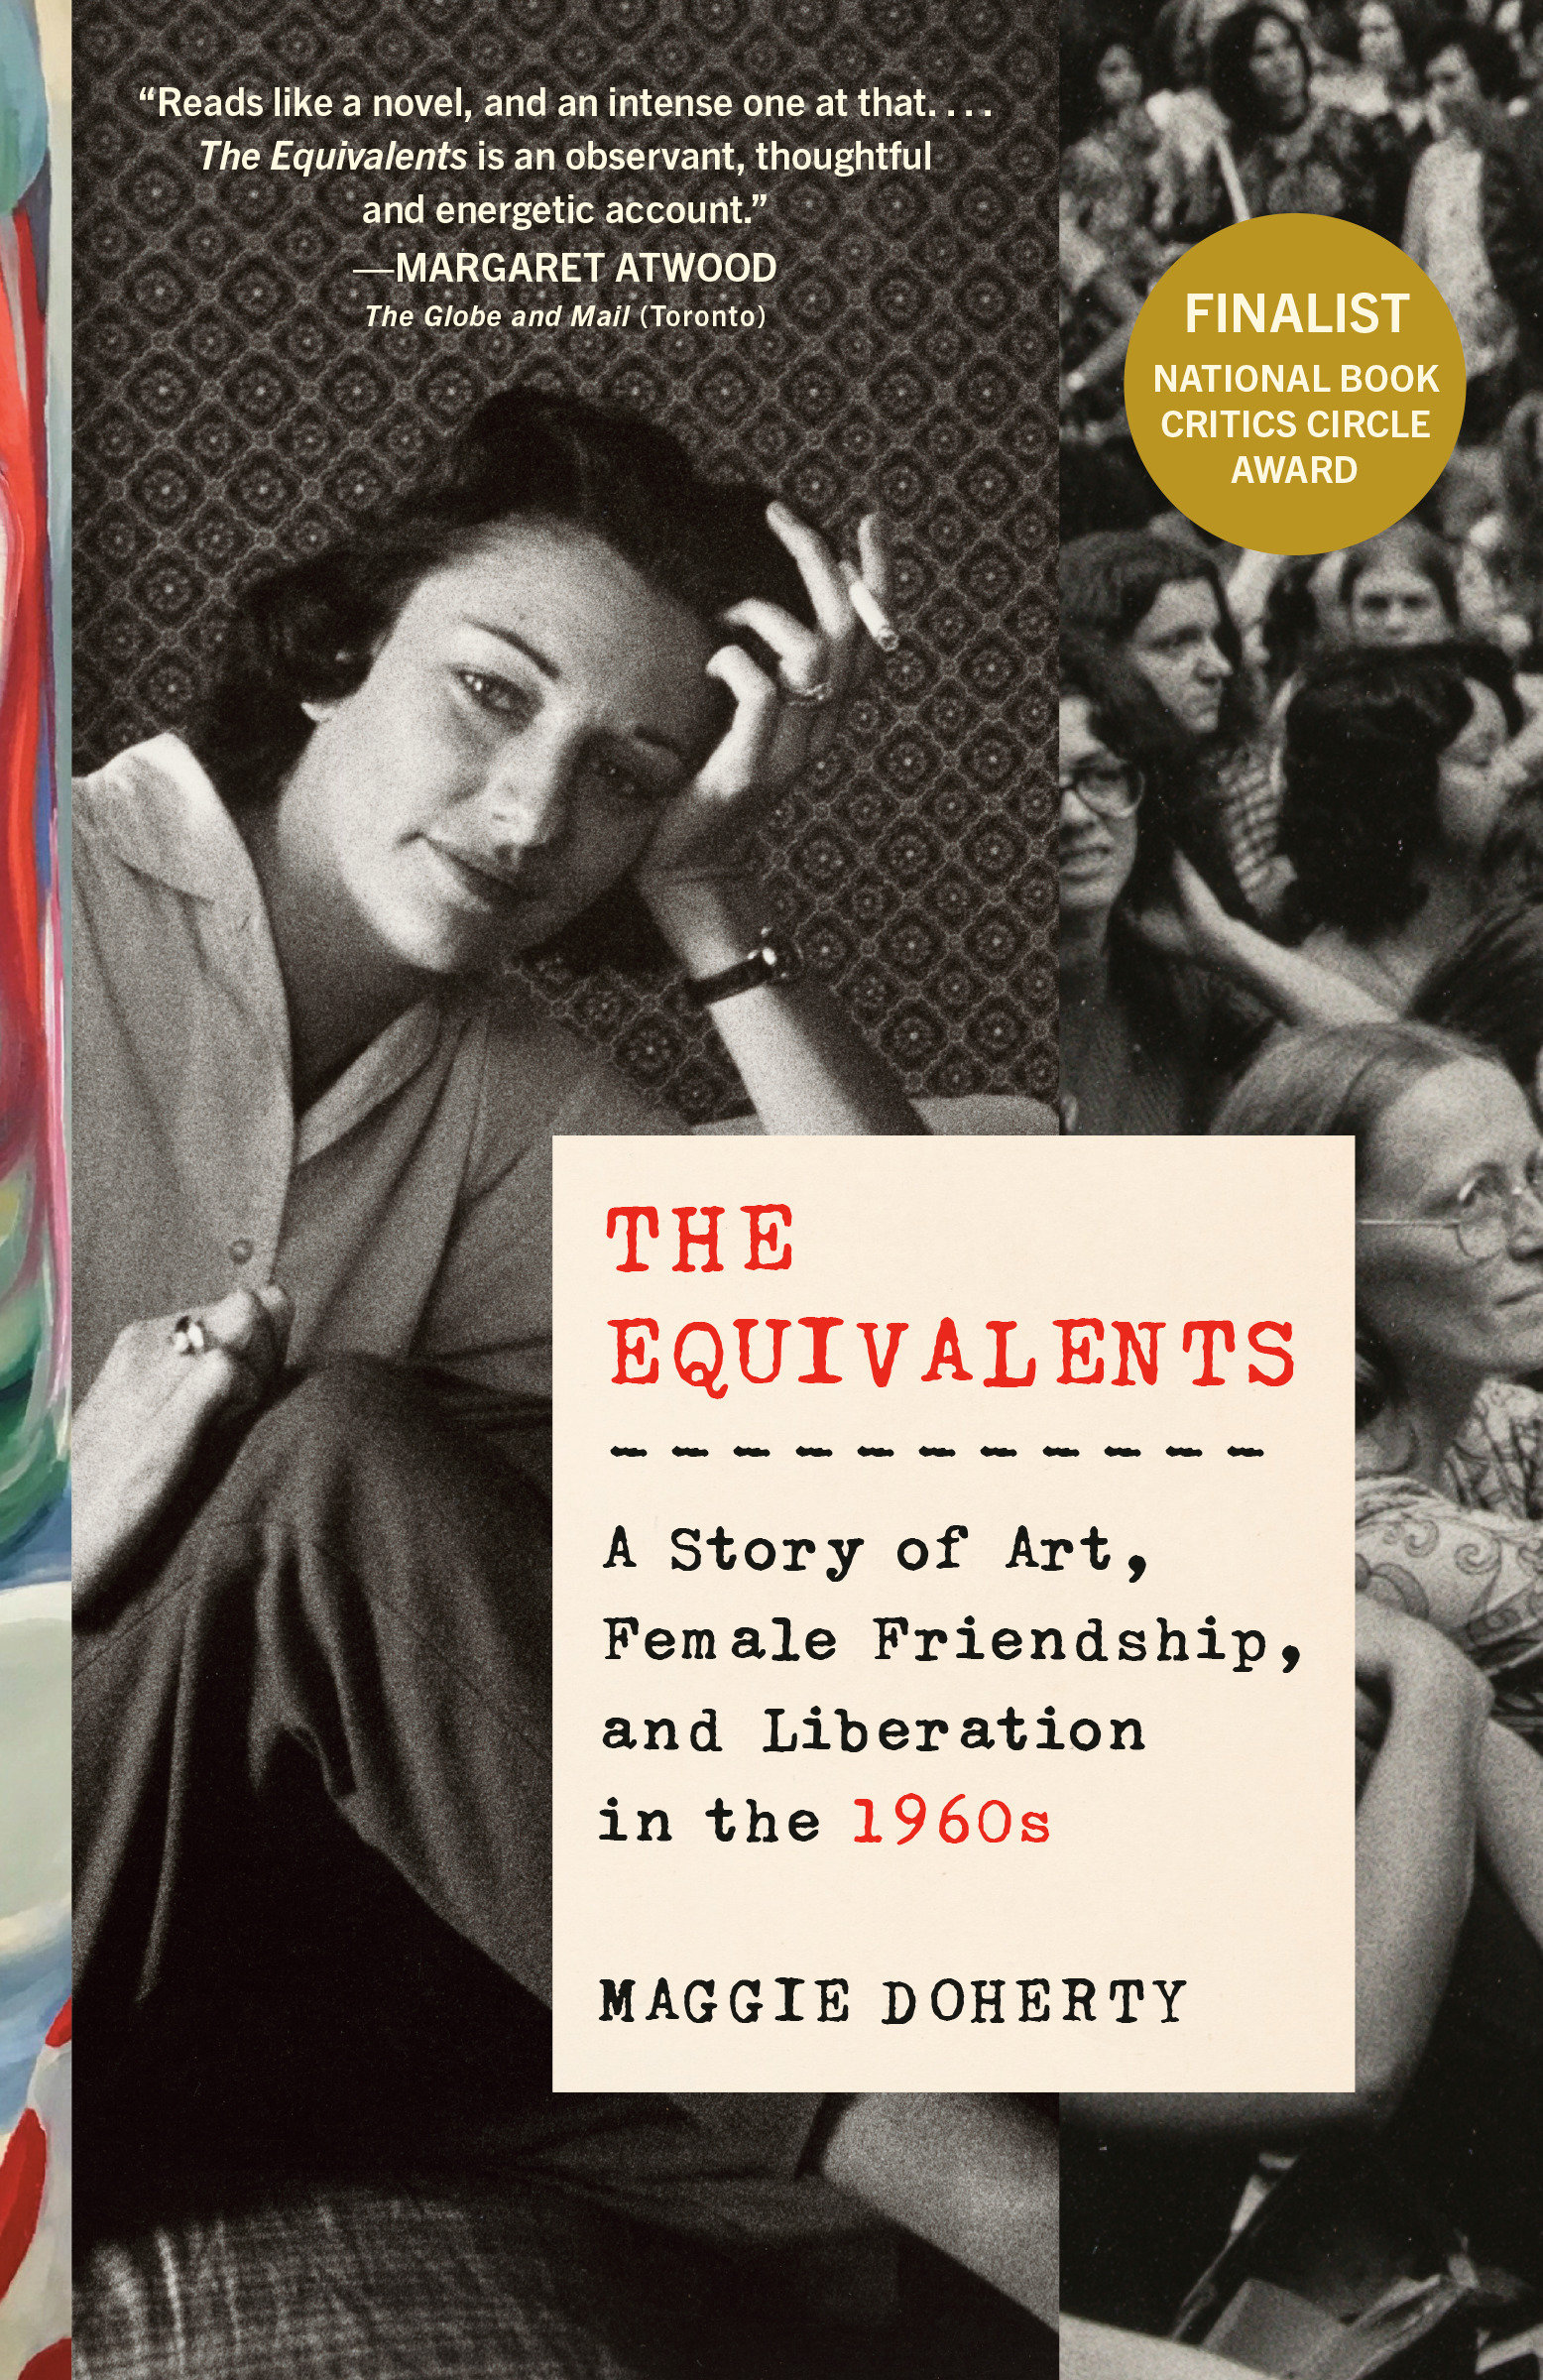 The Equivalents A Story of Art, Female Friendship, and Liberation in the 1960s